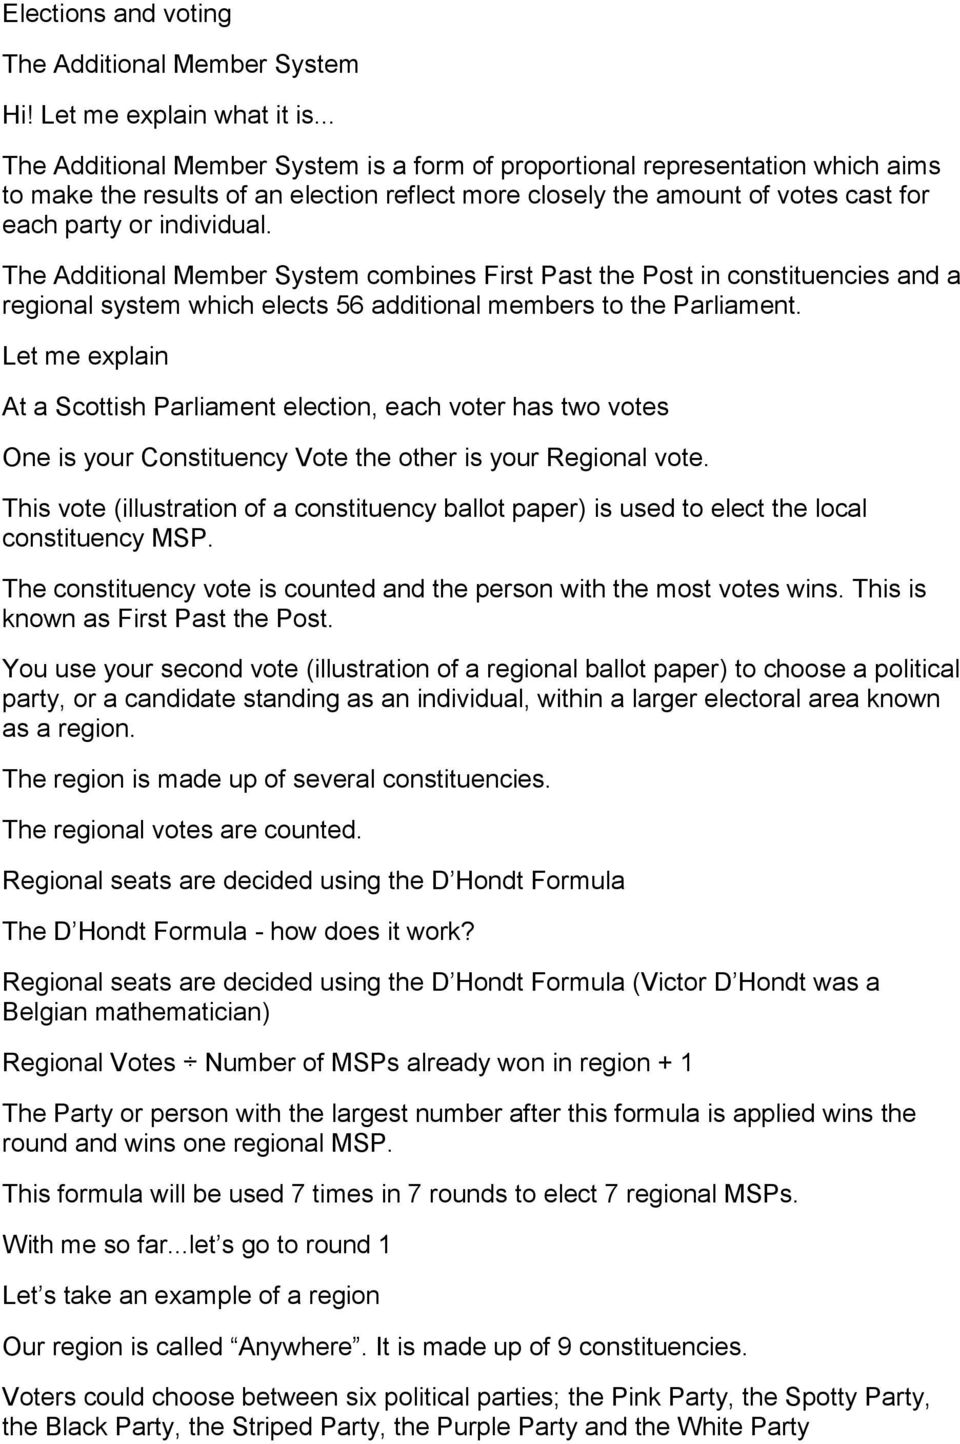 The Additional Member System combines First Past the Post in constituencies and a regional system which elects 56 additional members to the Parliament.